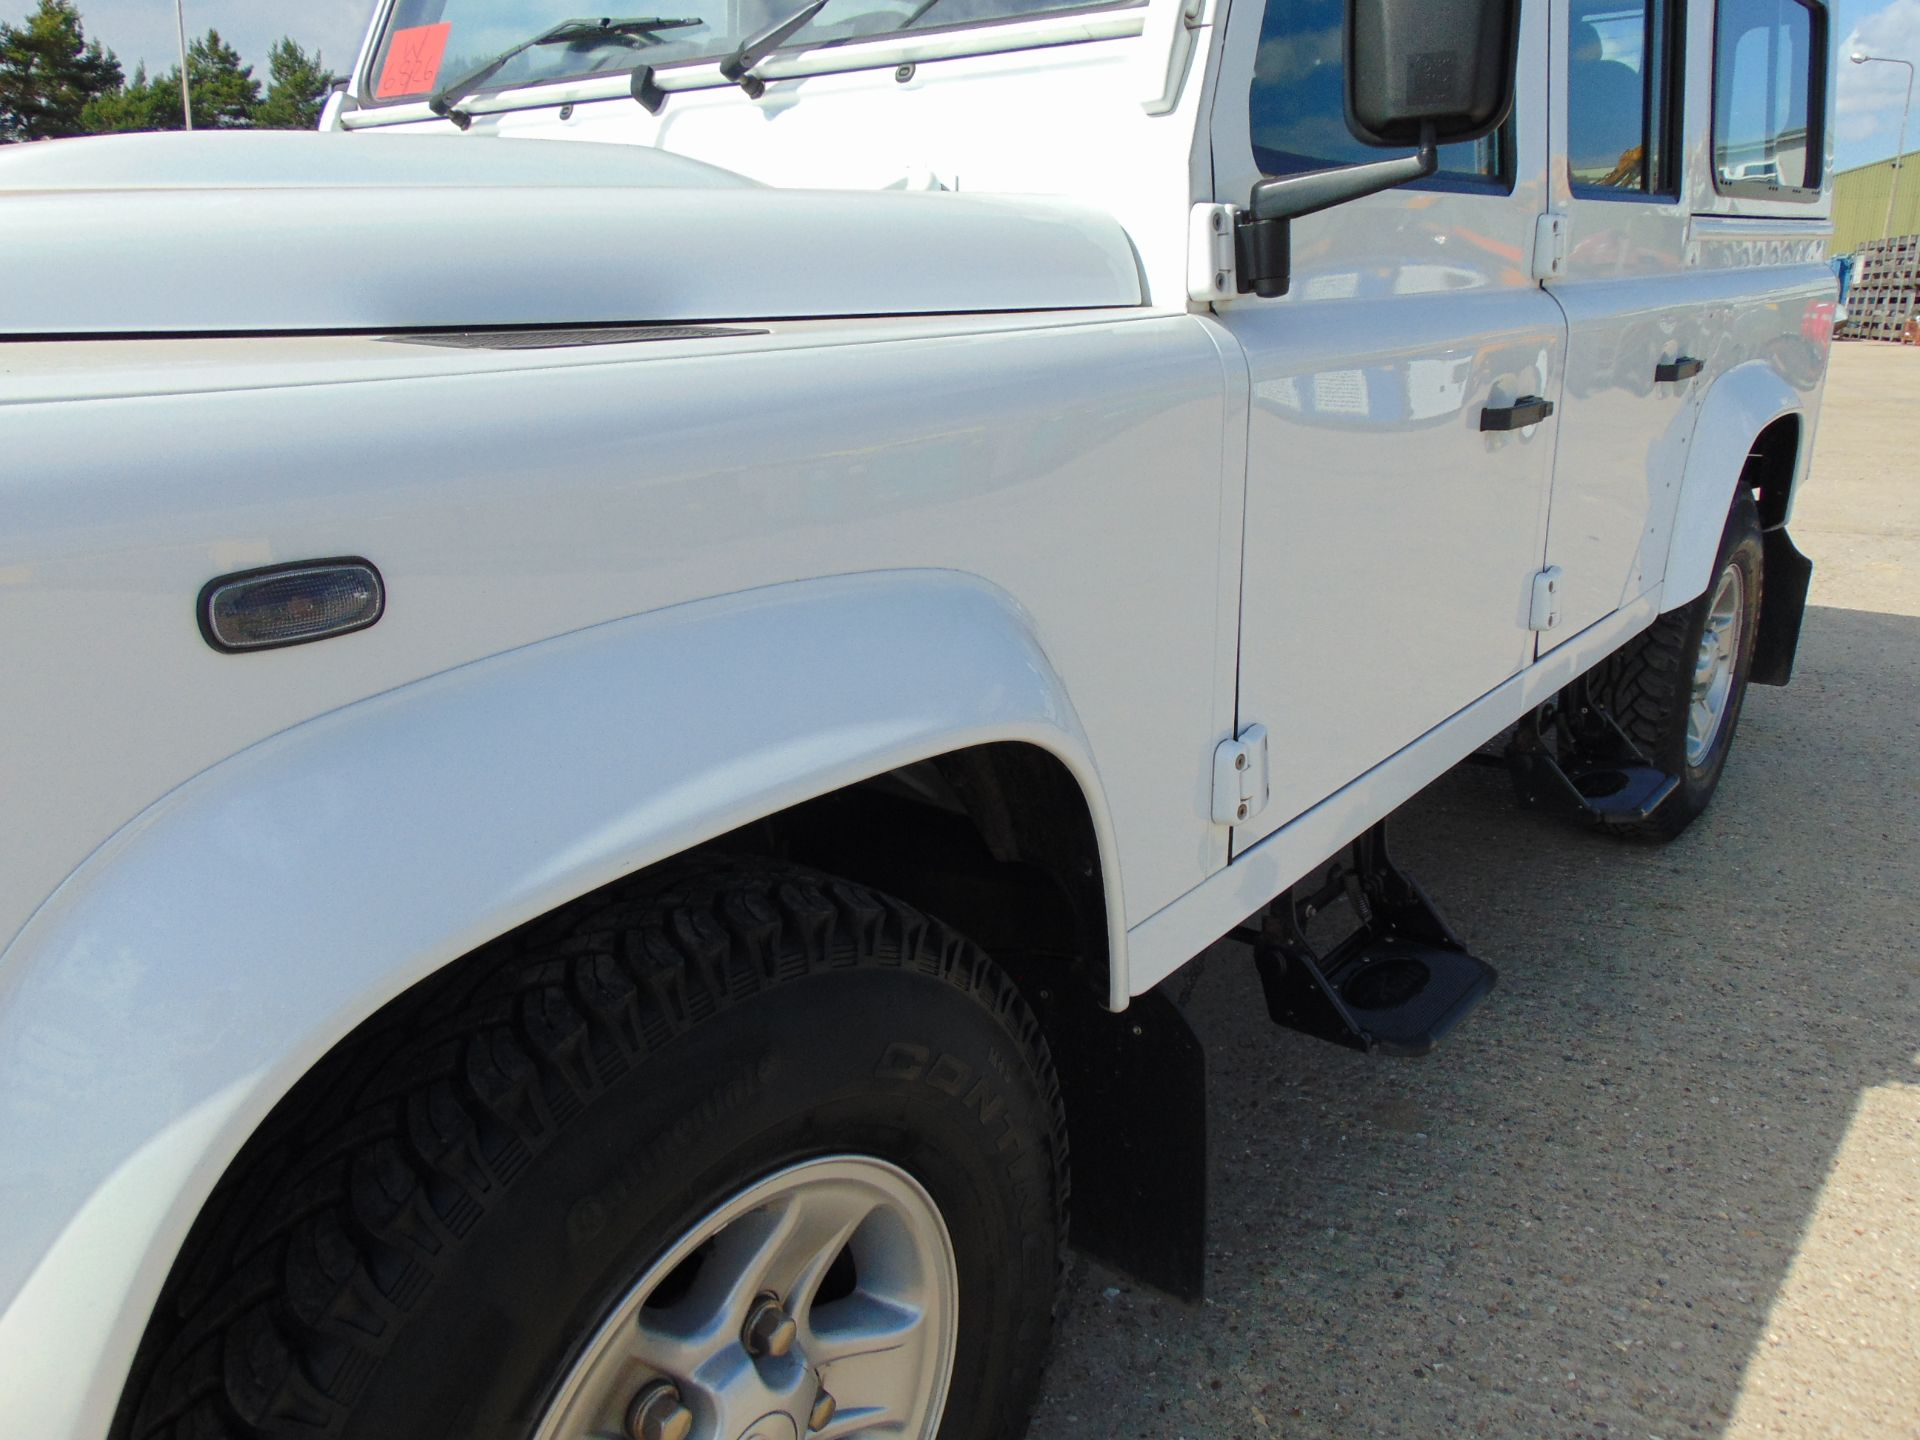 Lot 35 - 2015 Land Rover Defender 110 5 Door County Station Wagon ONLY 8,712 Miles!!!